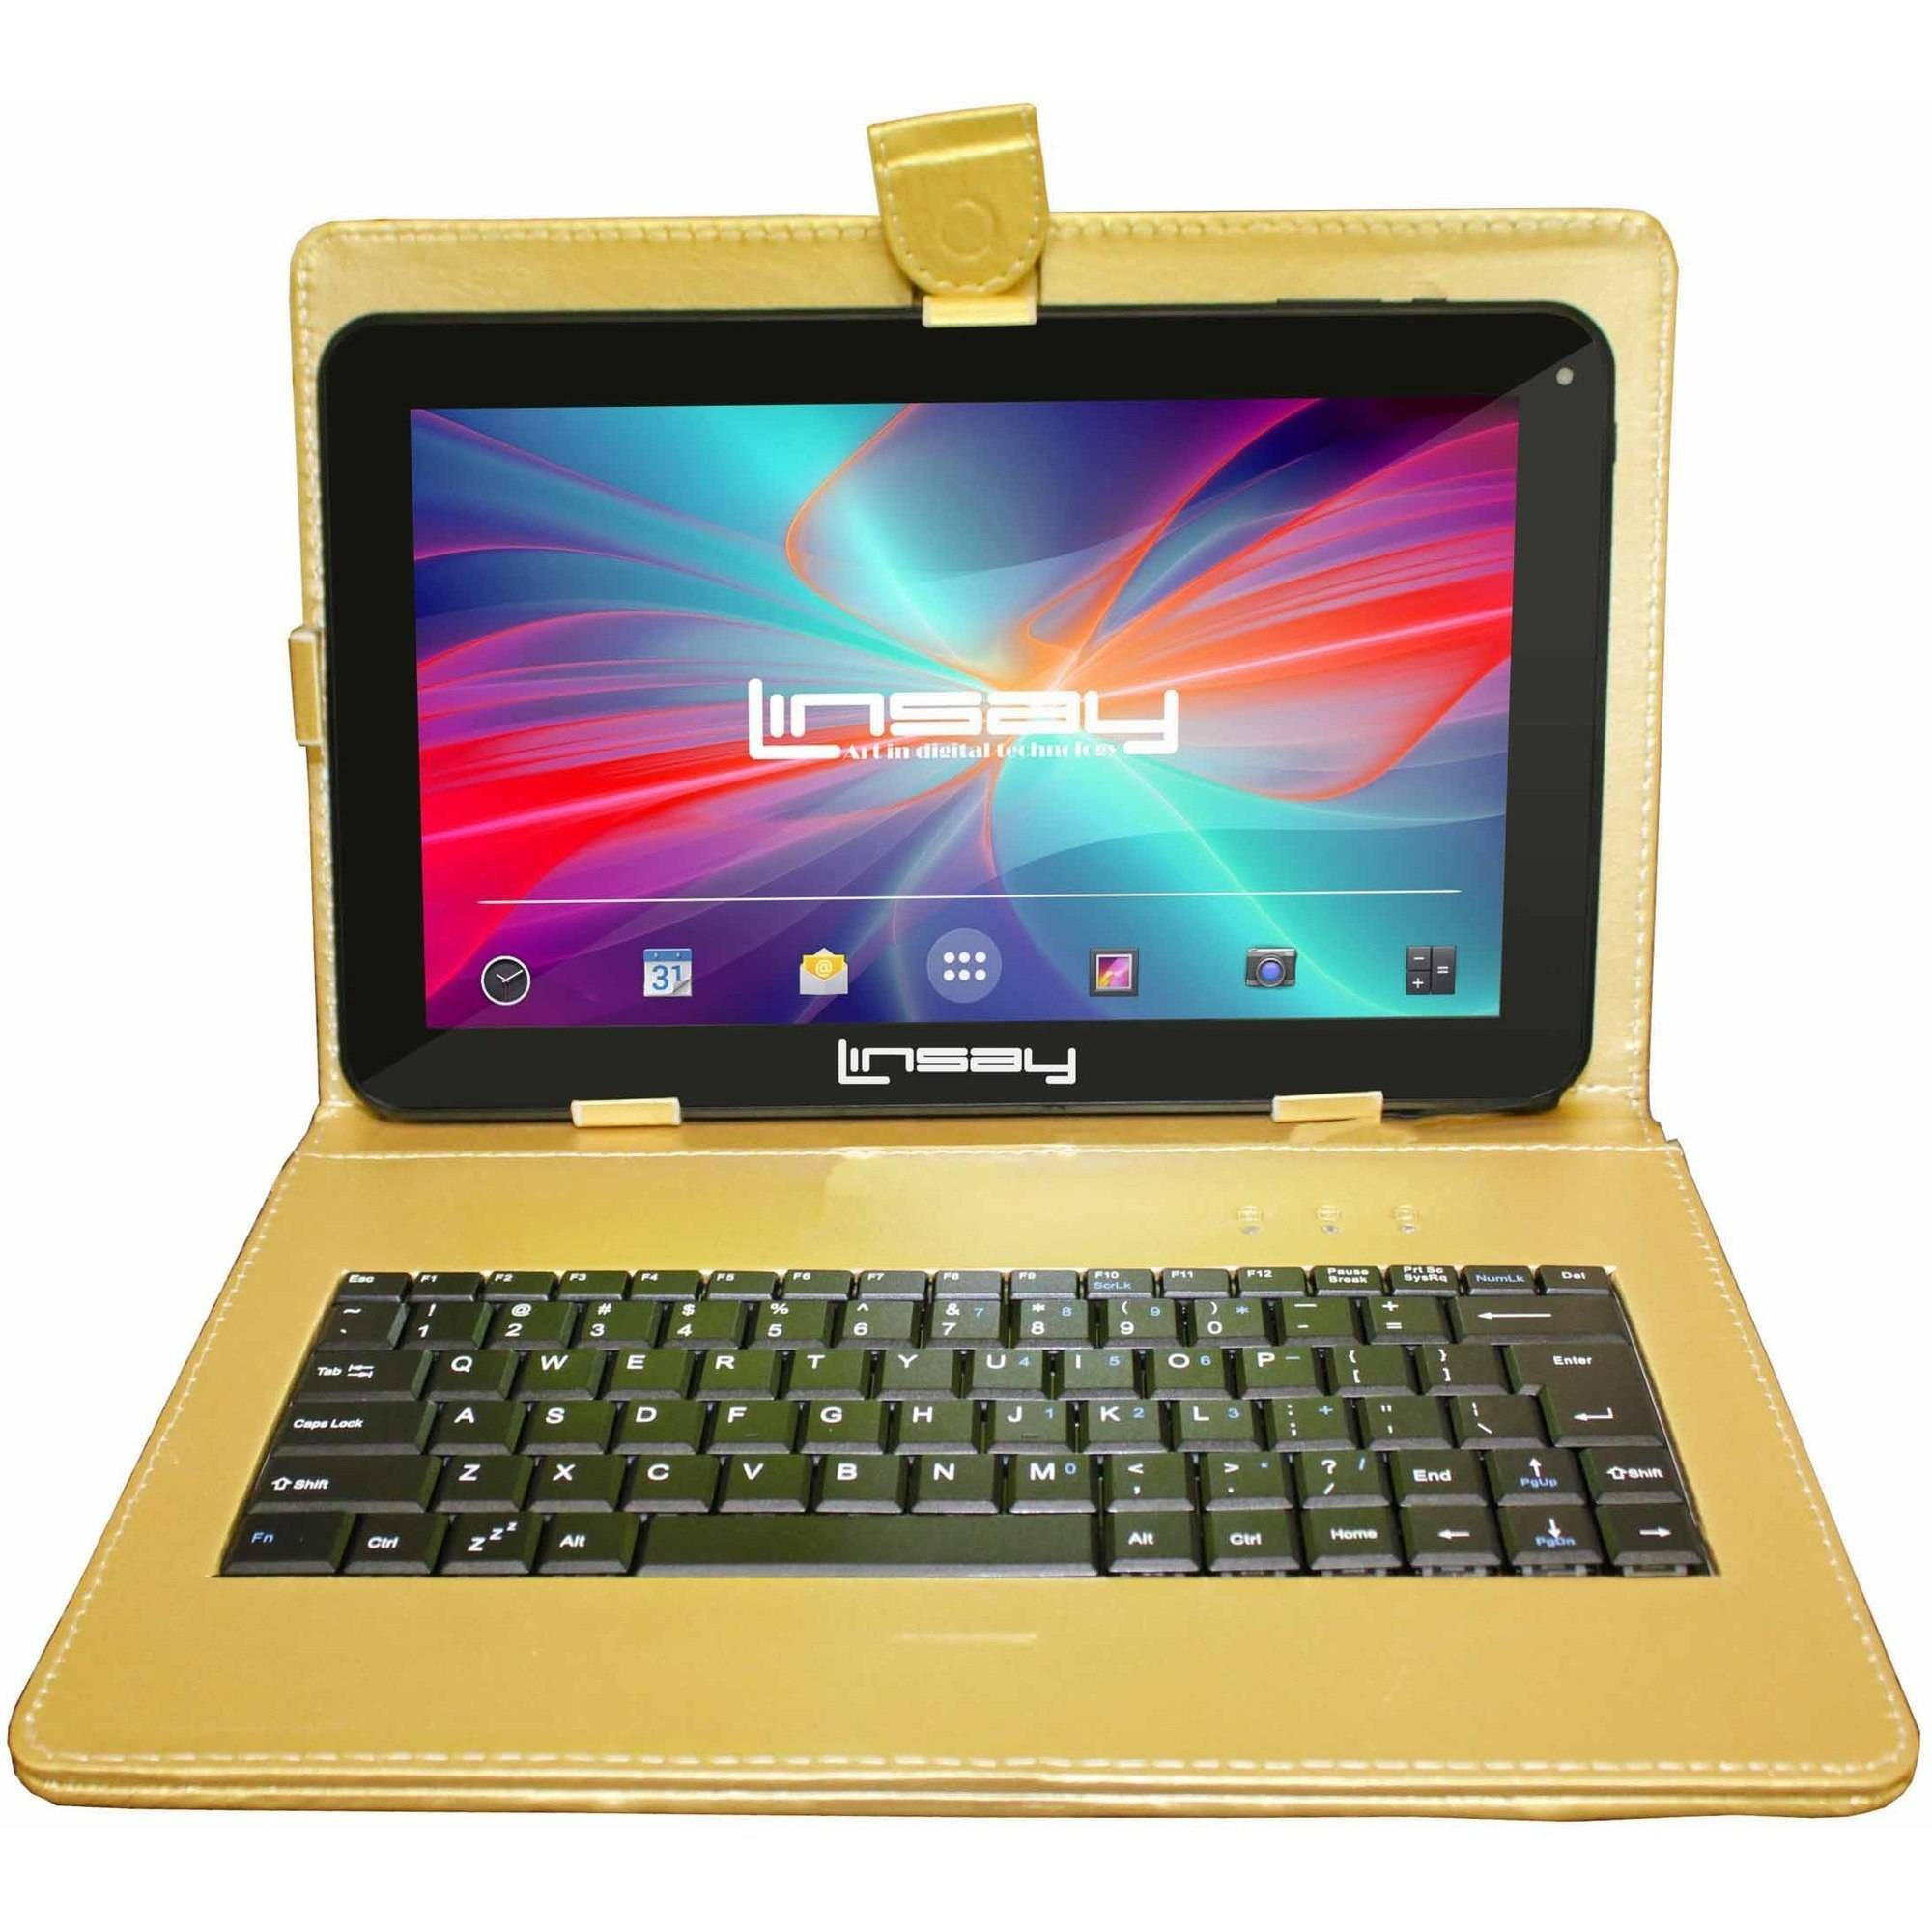 "LINSAY 10.1"" Touchscreen Tablet PC Featuring Android 4.4 (KitKat) Operating System Bundle with Golden Keyboard"